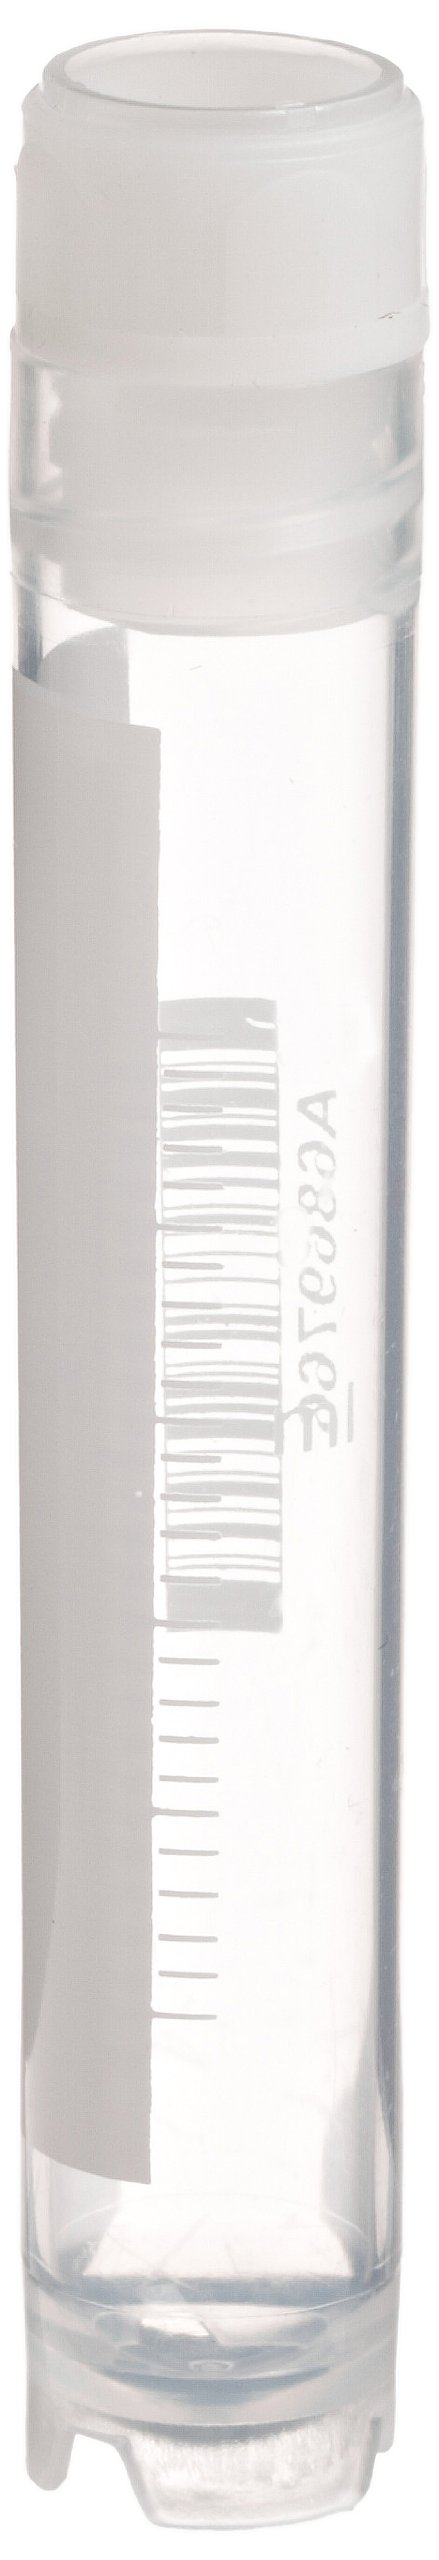 Globe Scientific CryoClear 3005 Polypropylene Barcoded Cryogenic Vial, 4mL Capacity, Sterile, Internal Threads, Attached Screwcap with Molded O-Ring, Round Bottom, Self-Standing (Case of 500)